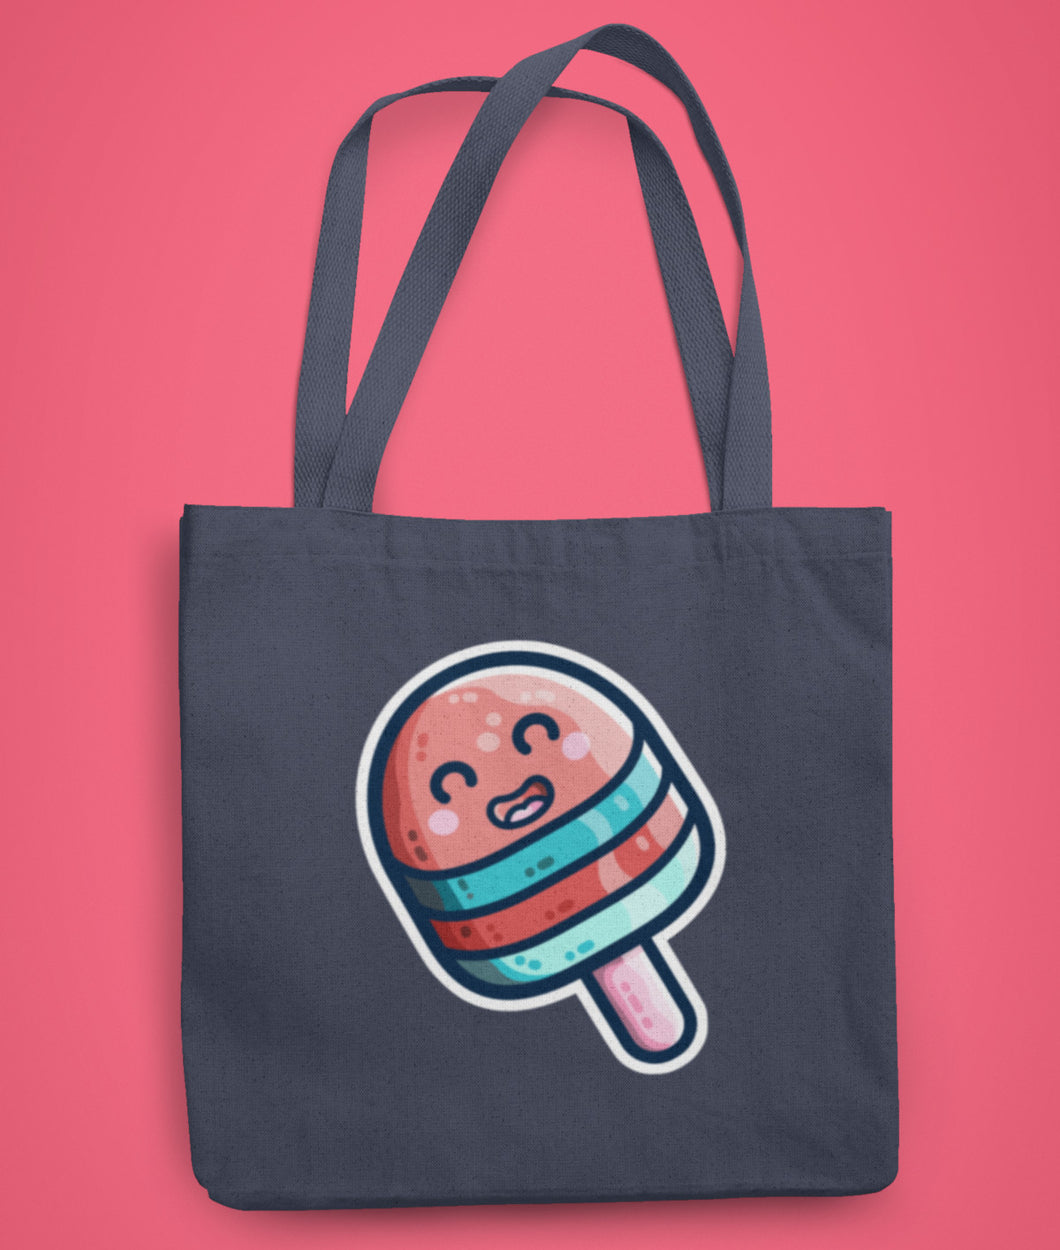 A dark blue coloured fabric tote bag lying flat against a pink background with a design in the center of a kawaii cute striped blue and red ice lolly on a stick with a big happy smile and bordered with a white line.